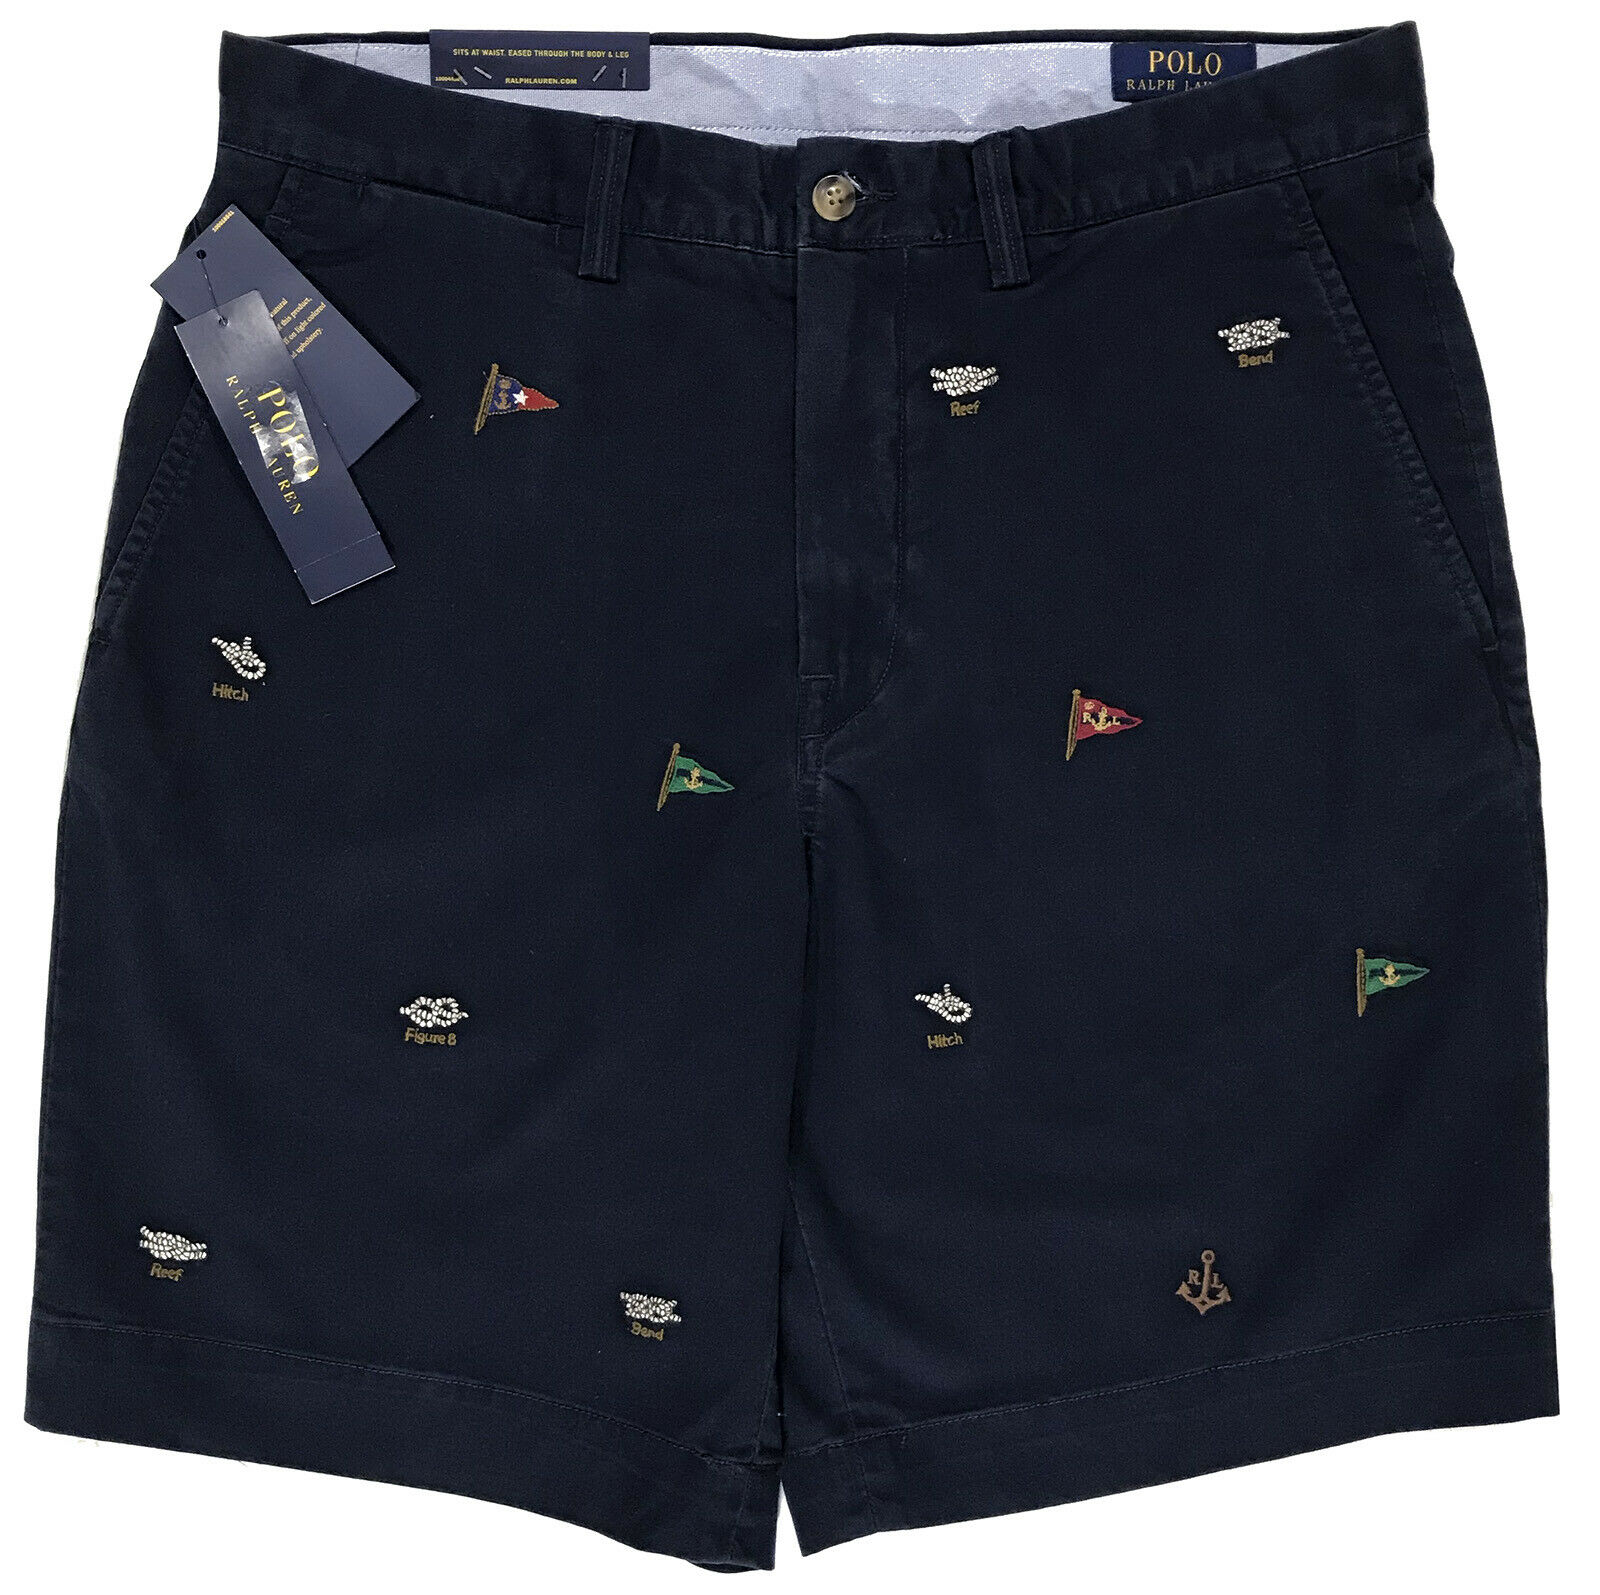 Men's POLO RALPH LAUREN Navy bluee Sailing   Boating Flag Shorts 32 NWT NEW WoW